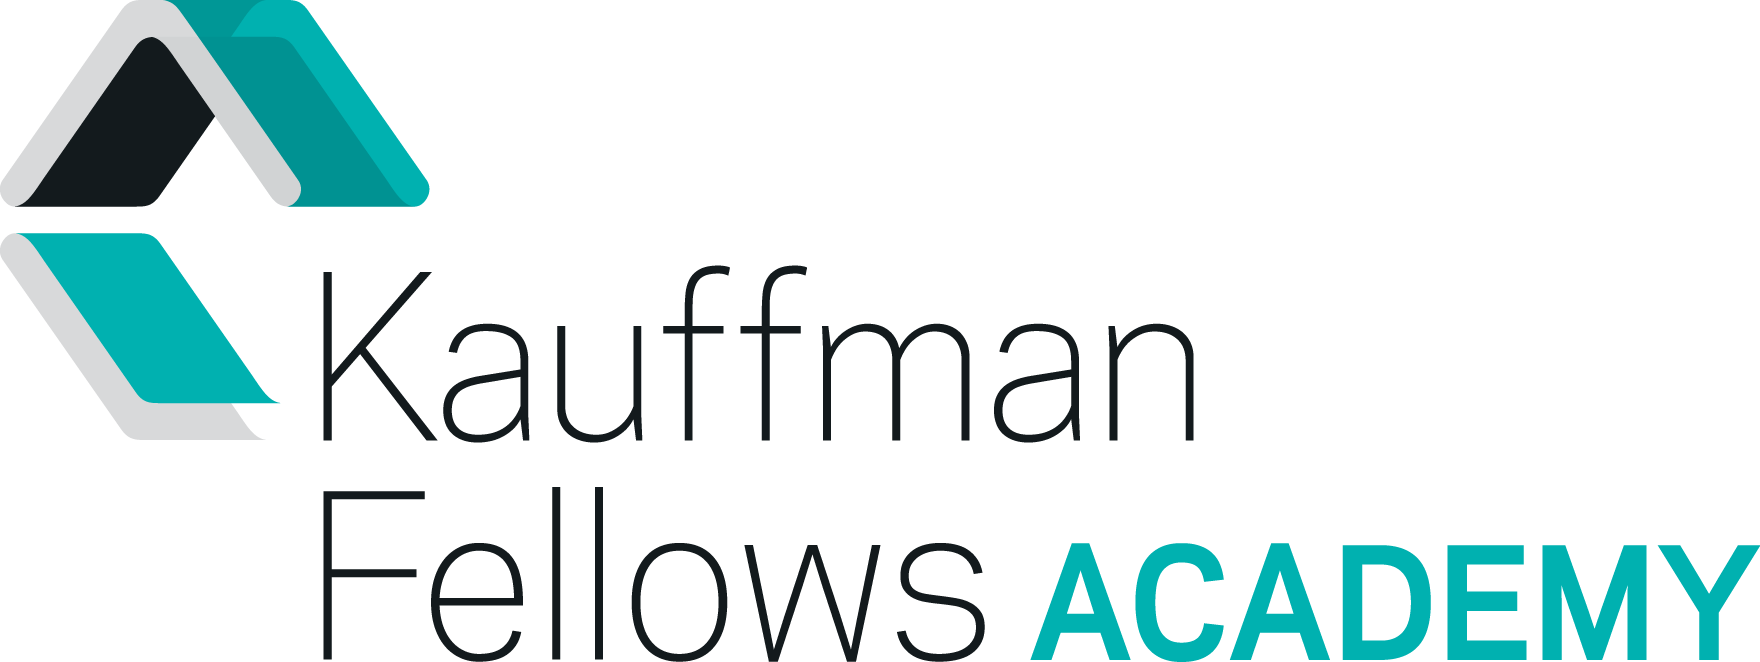 Kauffman Fellows Academy Online